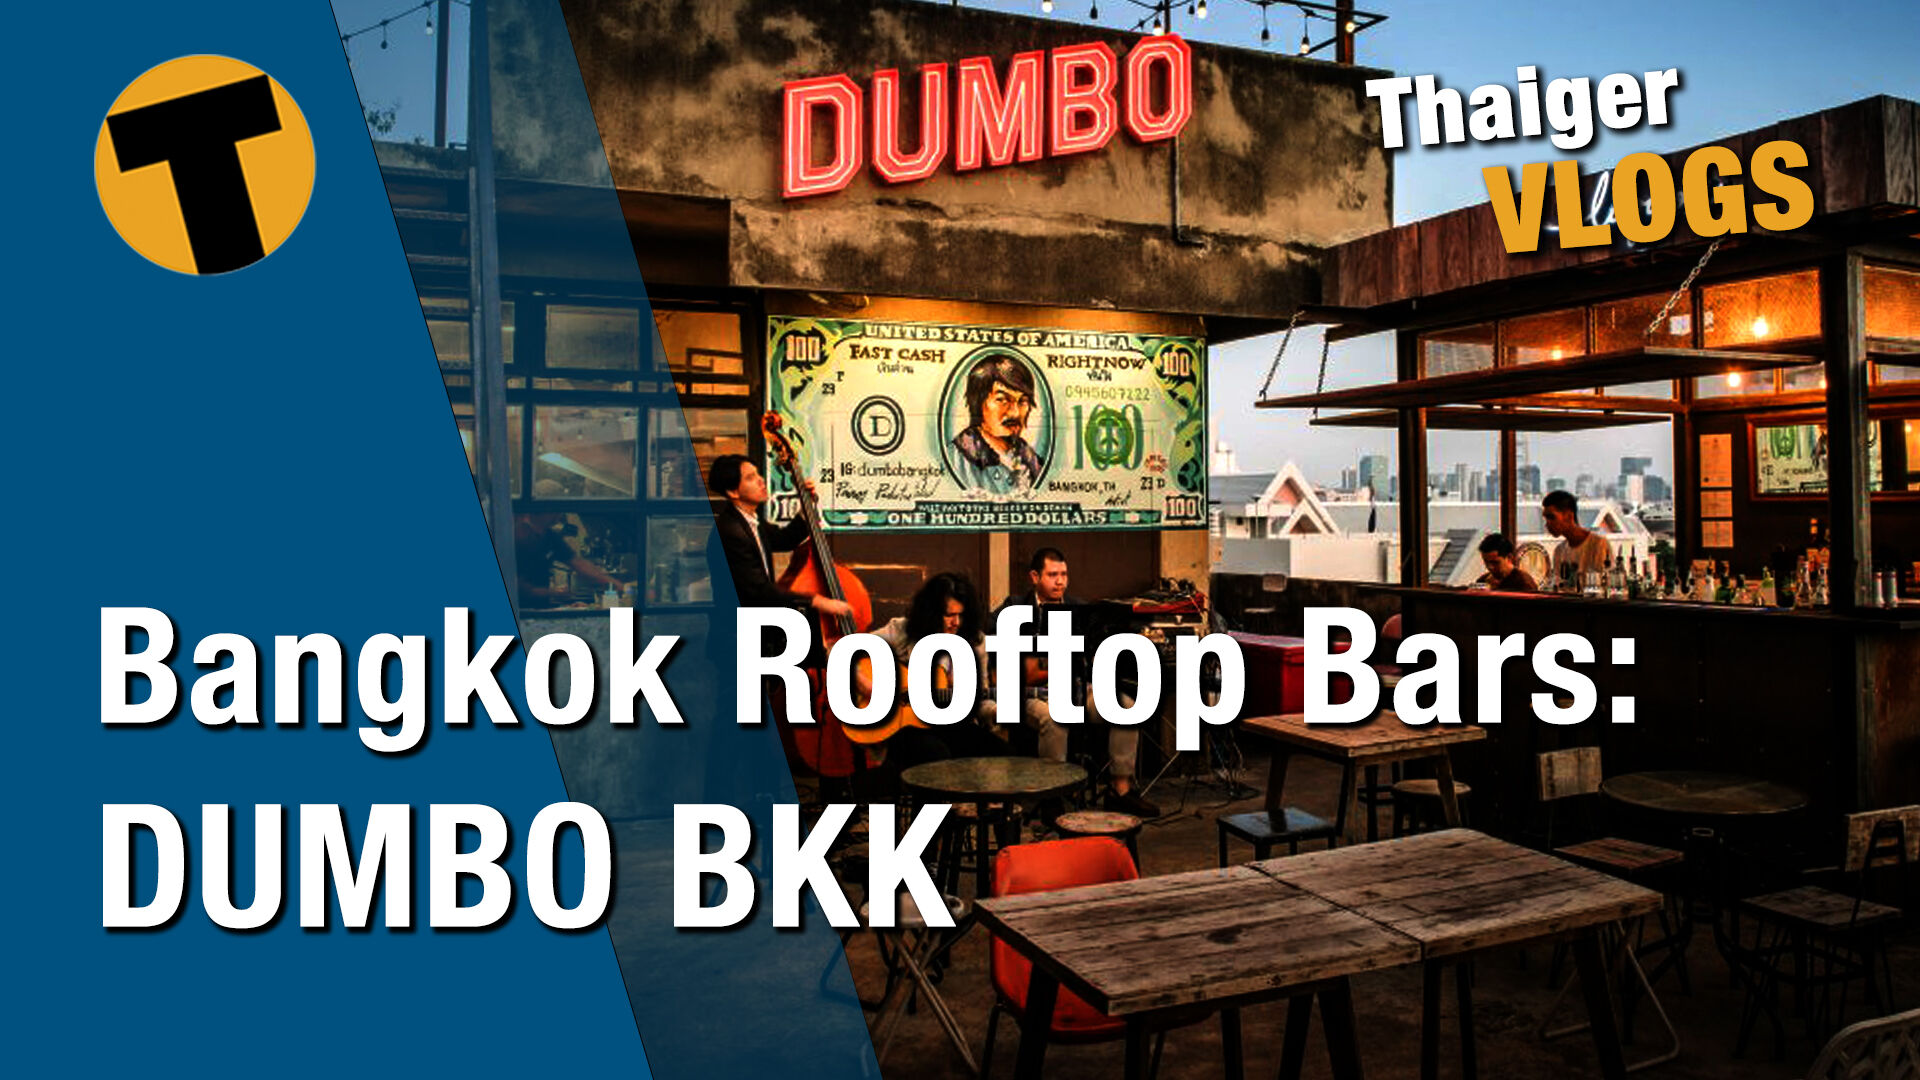 DUMBO the rooftop bar in Bangkok, a hidden gem | VIDEO | Thaiger